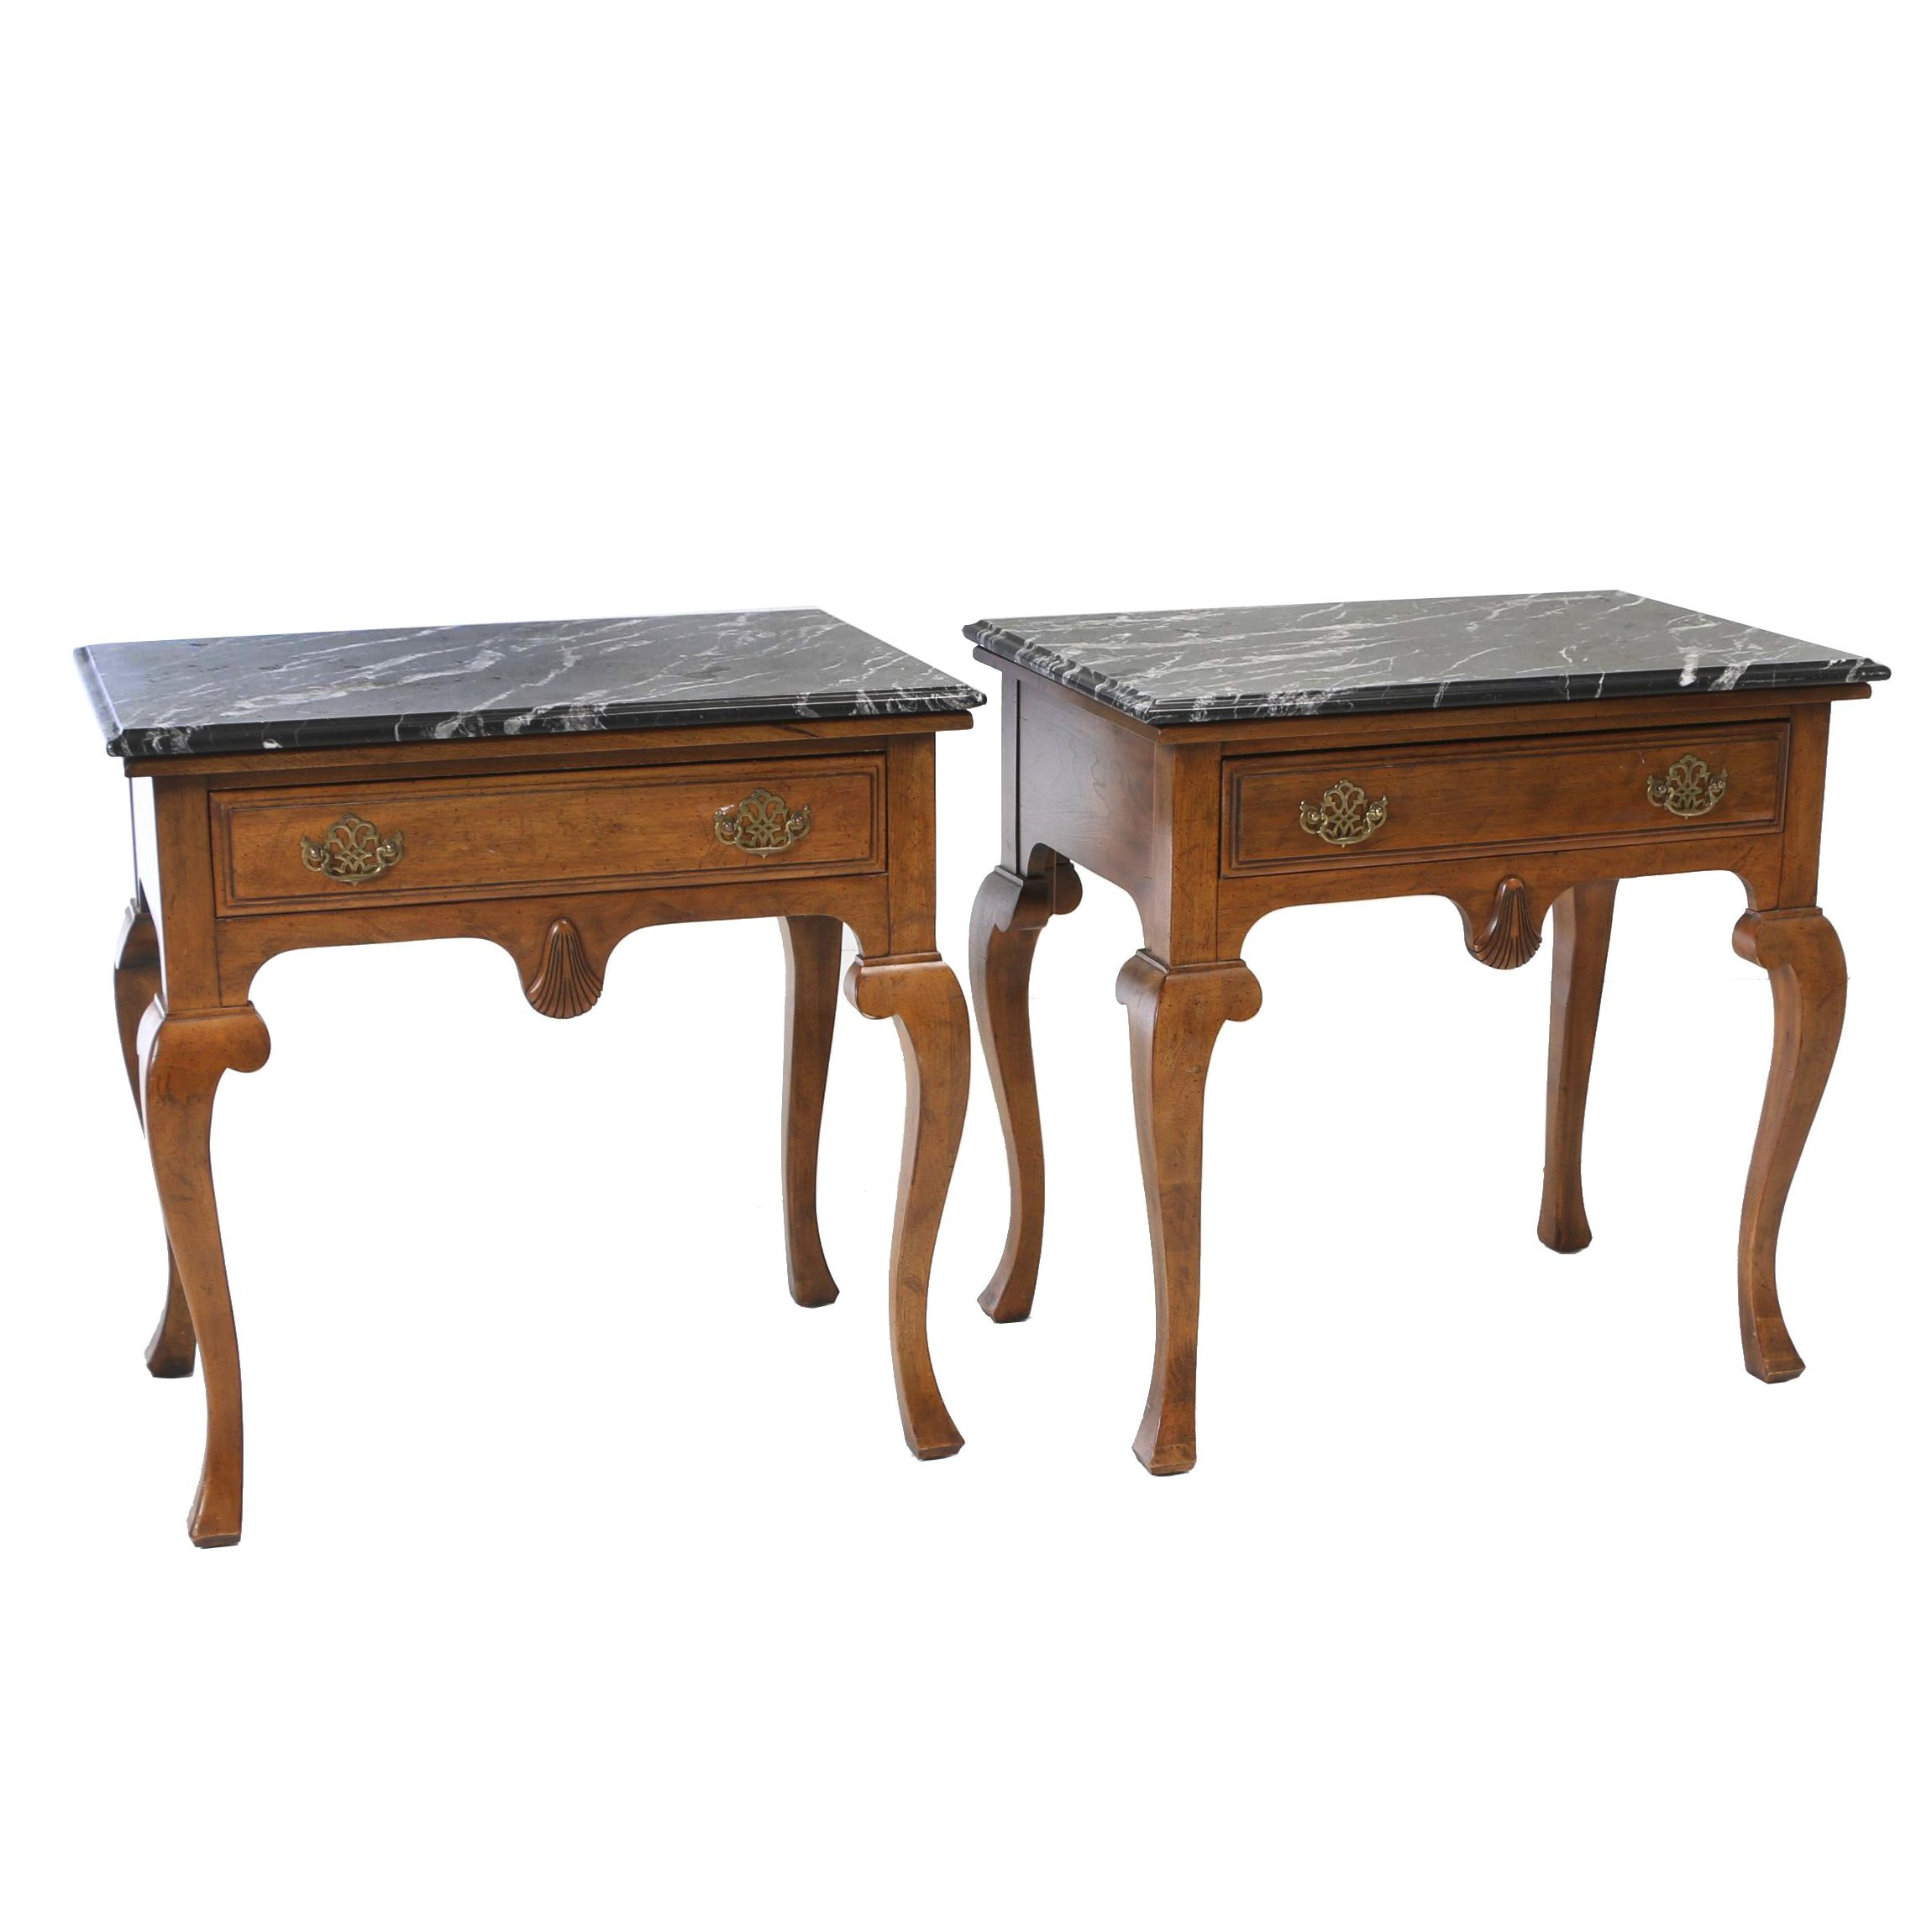 Pair of Walnut and Black Marble Limited Edition Side Tables by Davis Cabinet Co.